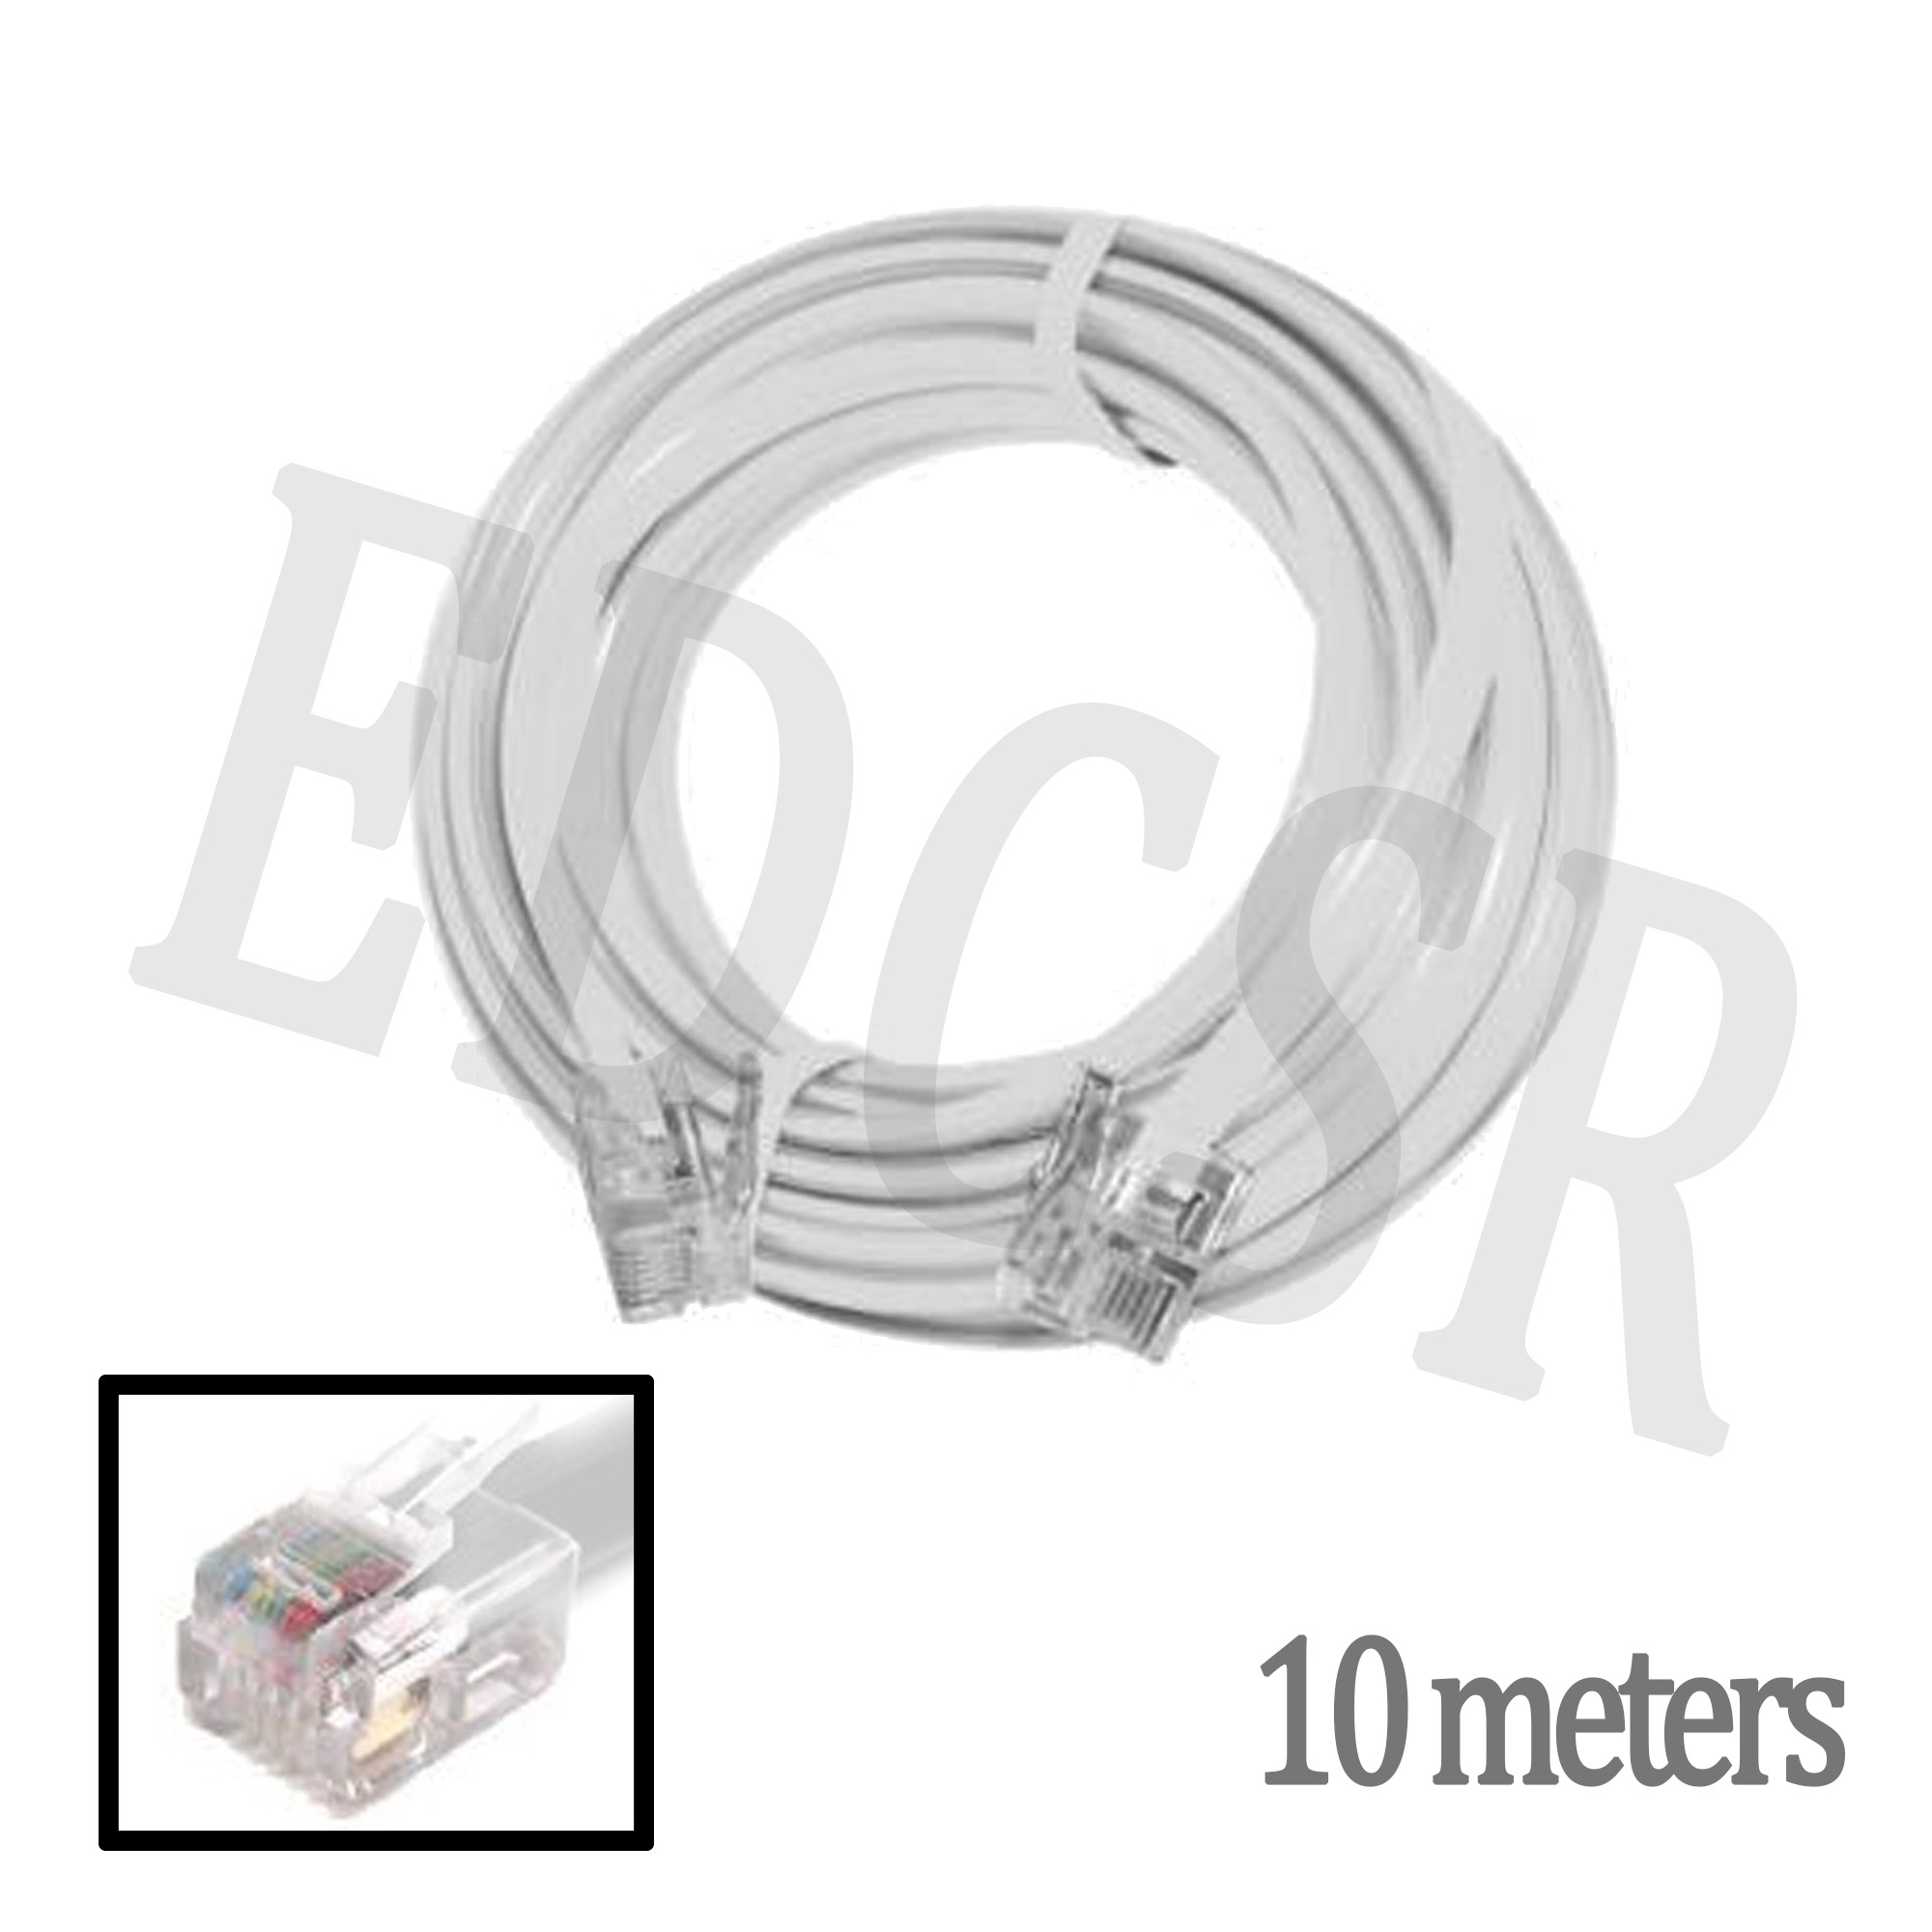 RJ11 Cable Telephone Line Wire - 10 Meters - White on